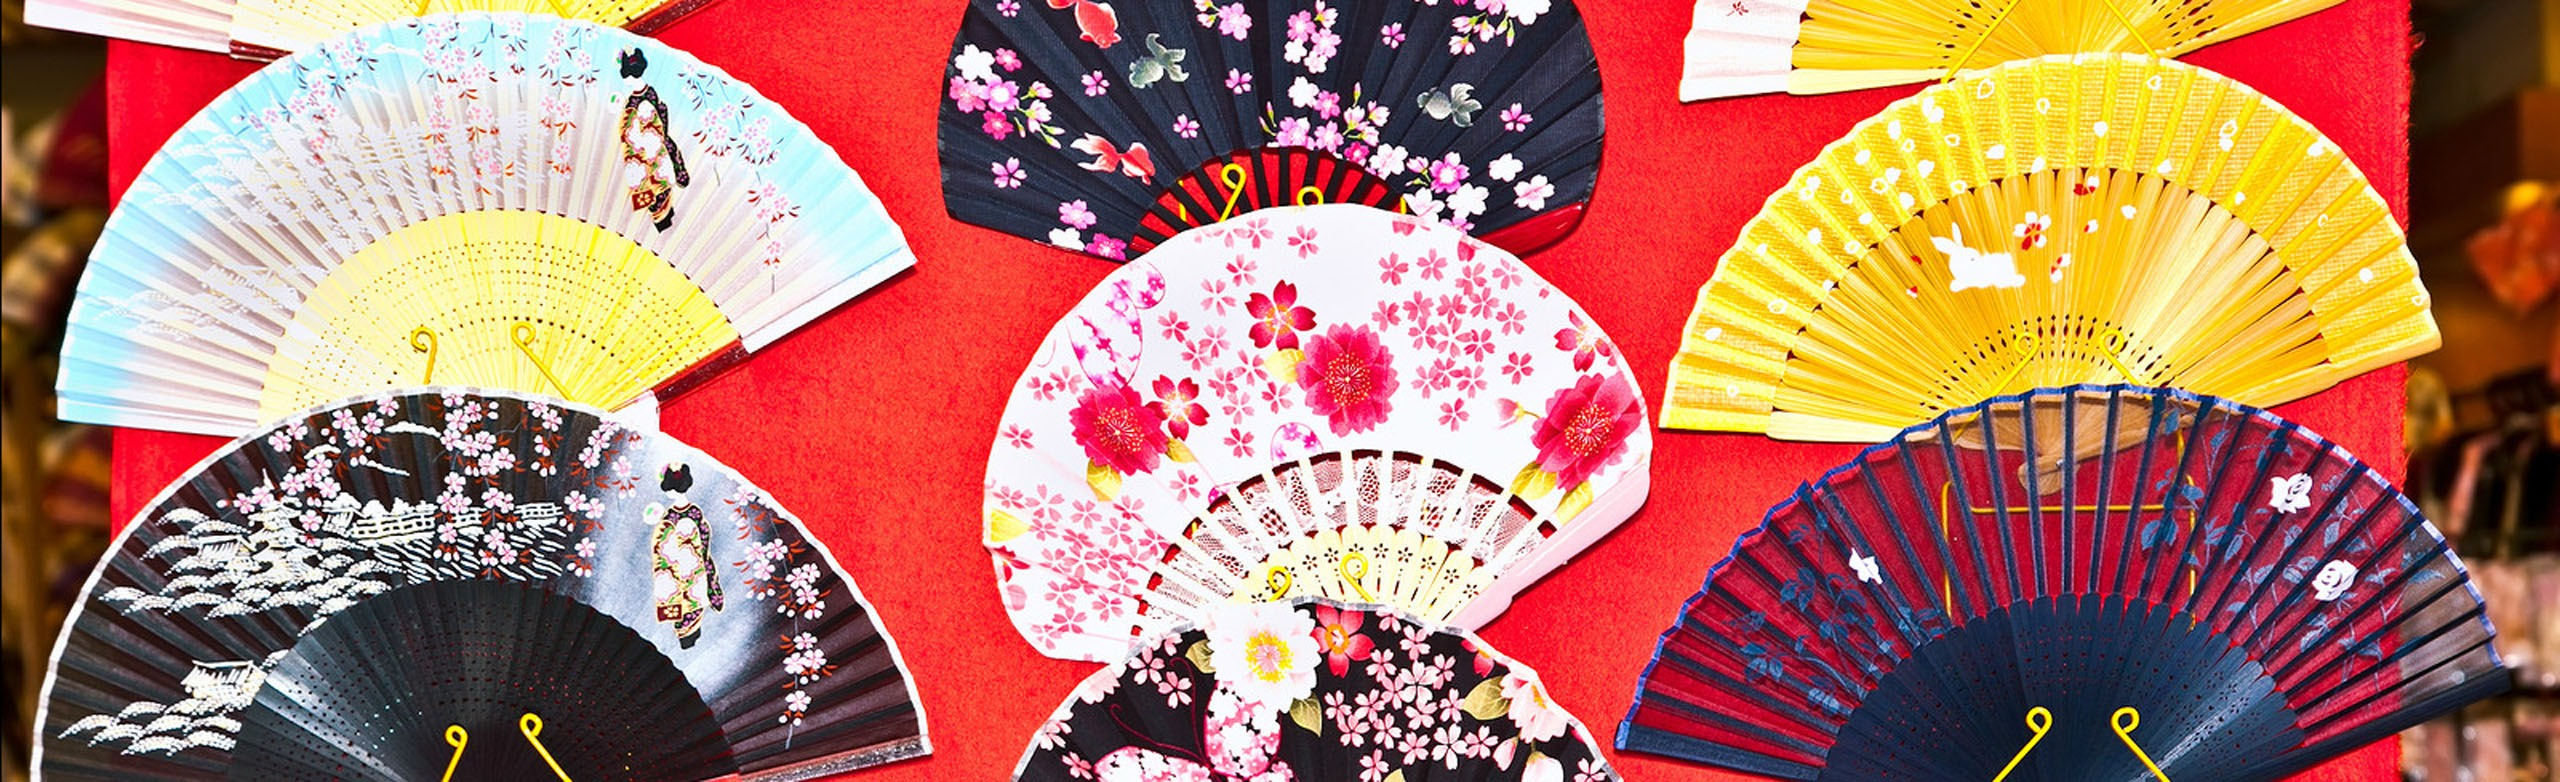 Shopping and Souvenirs in Kyoto - What to Buy And Where